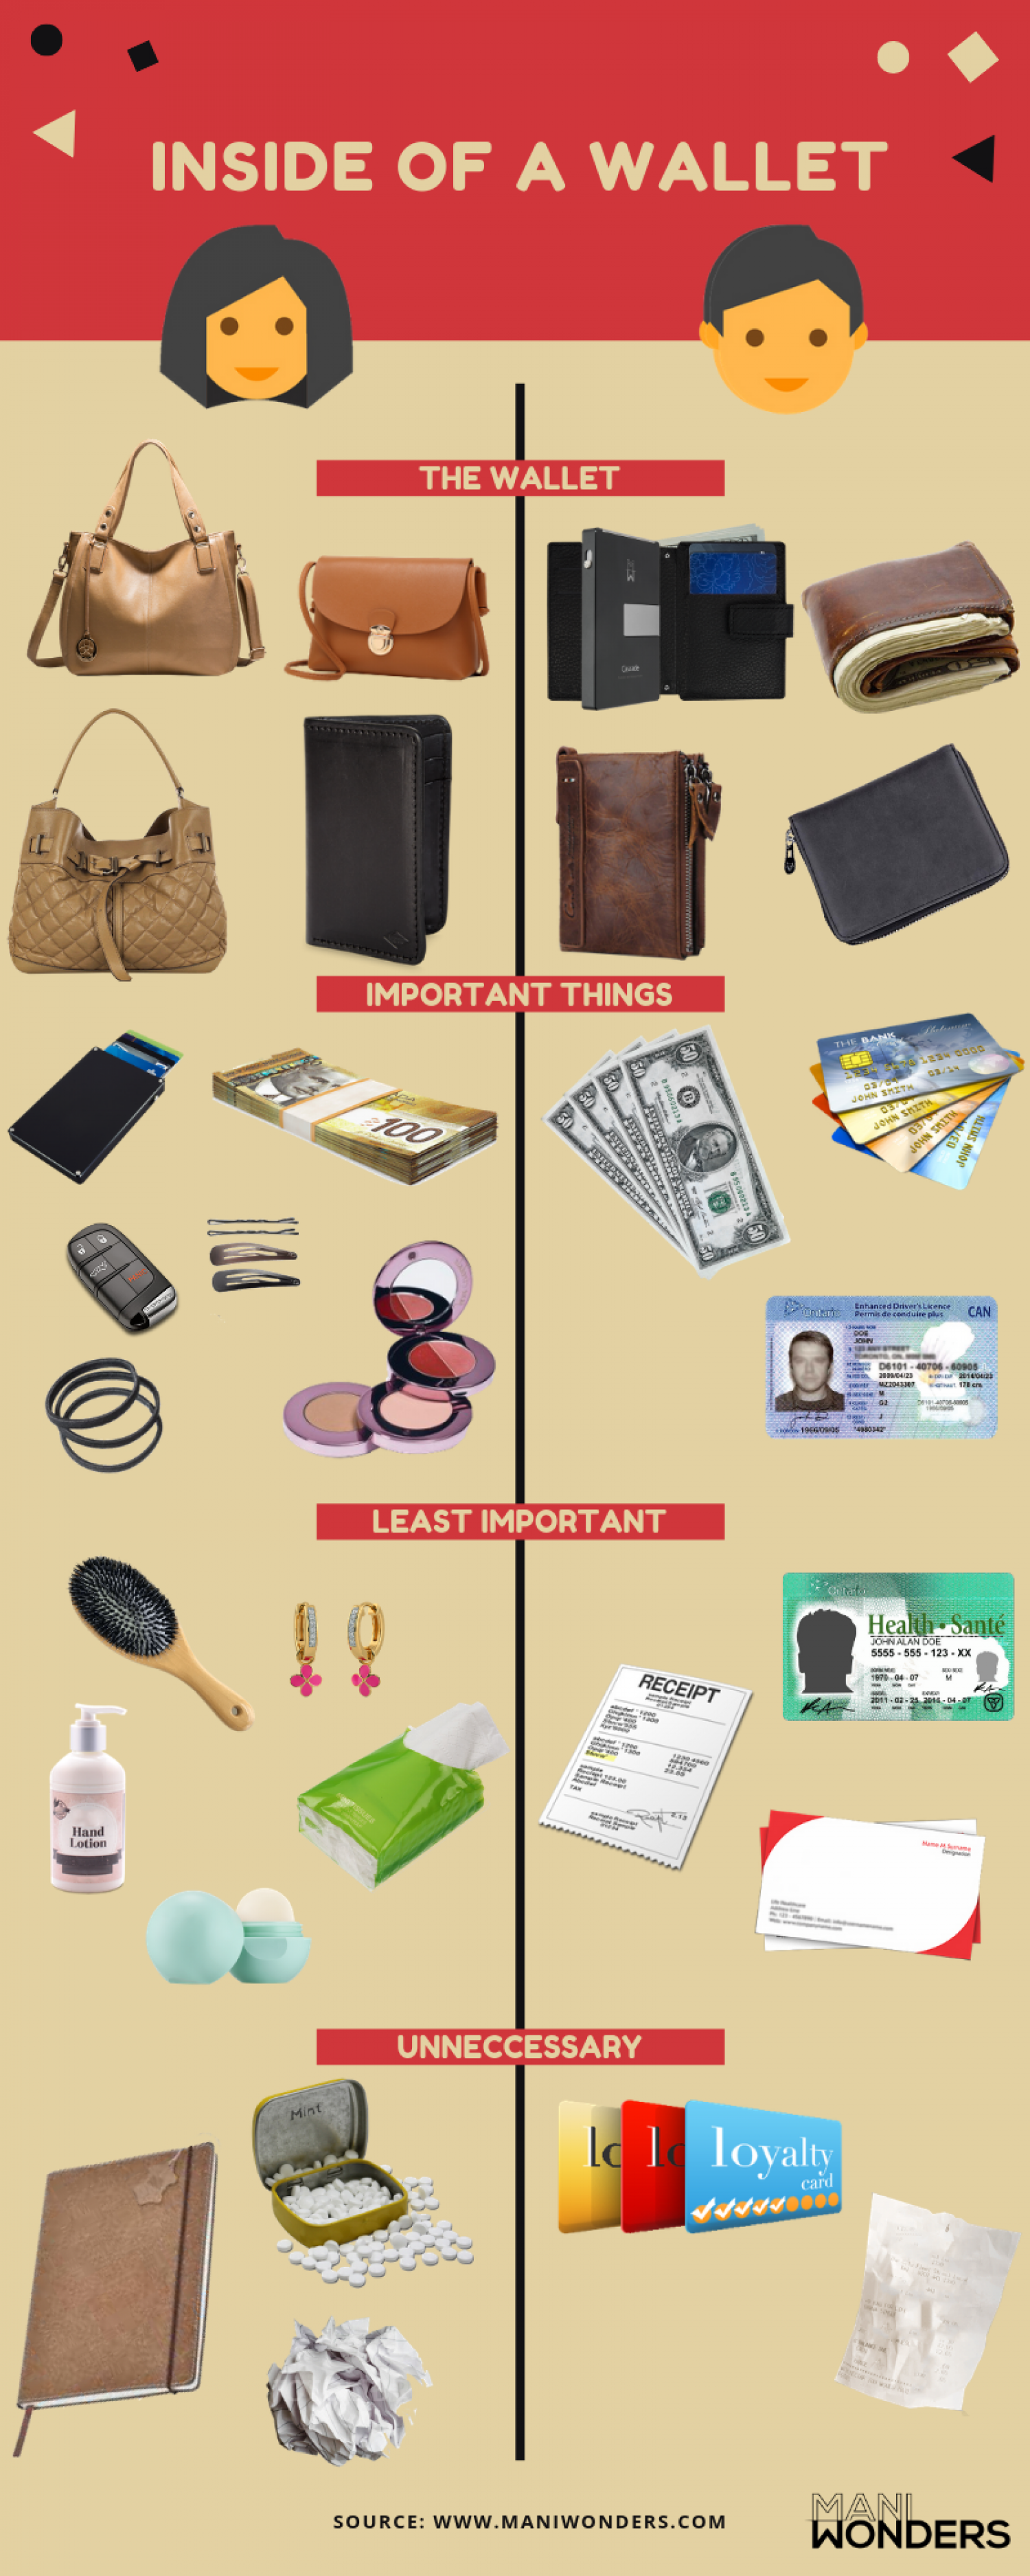 What Is Inside A Wallet Infographic